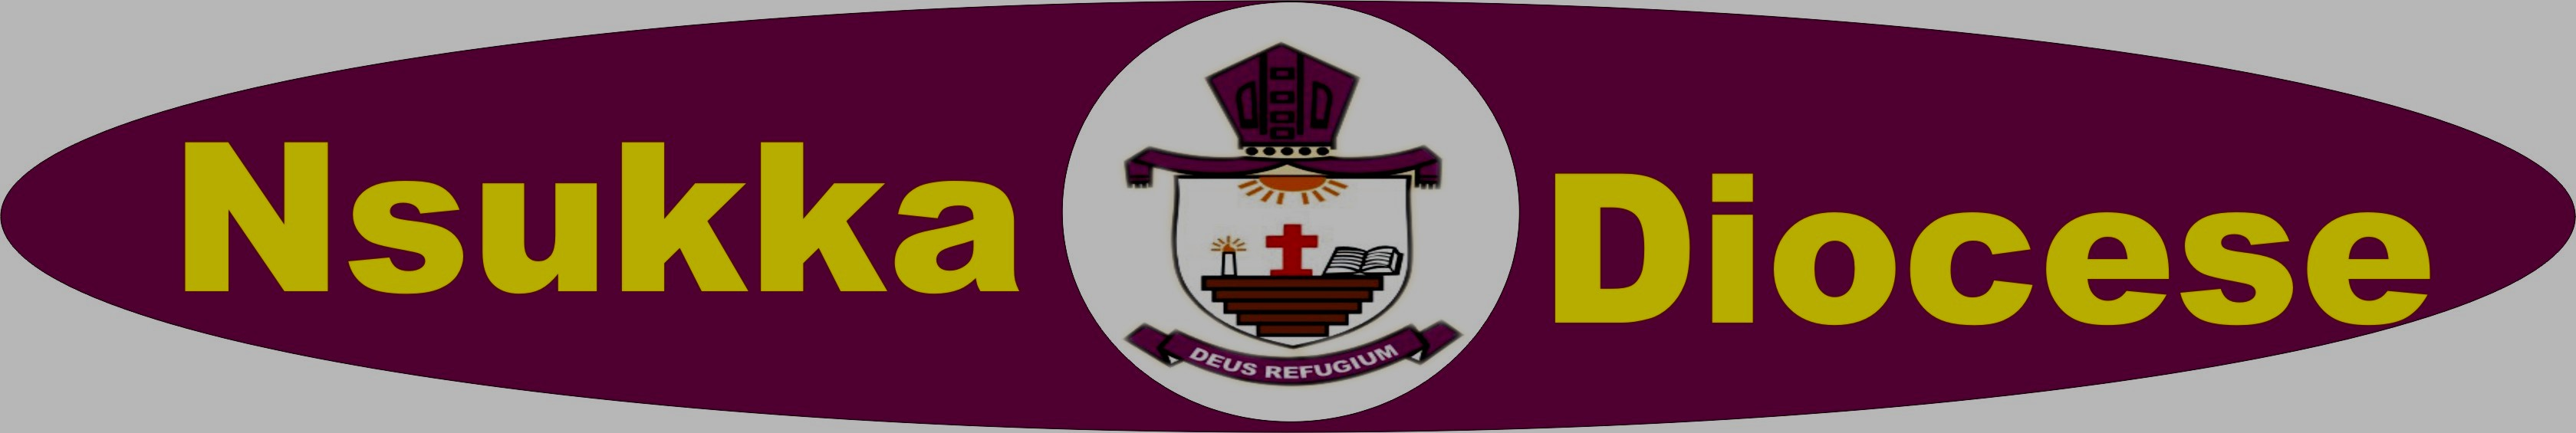 DIOCESE OF NSUKKA